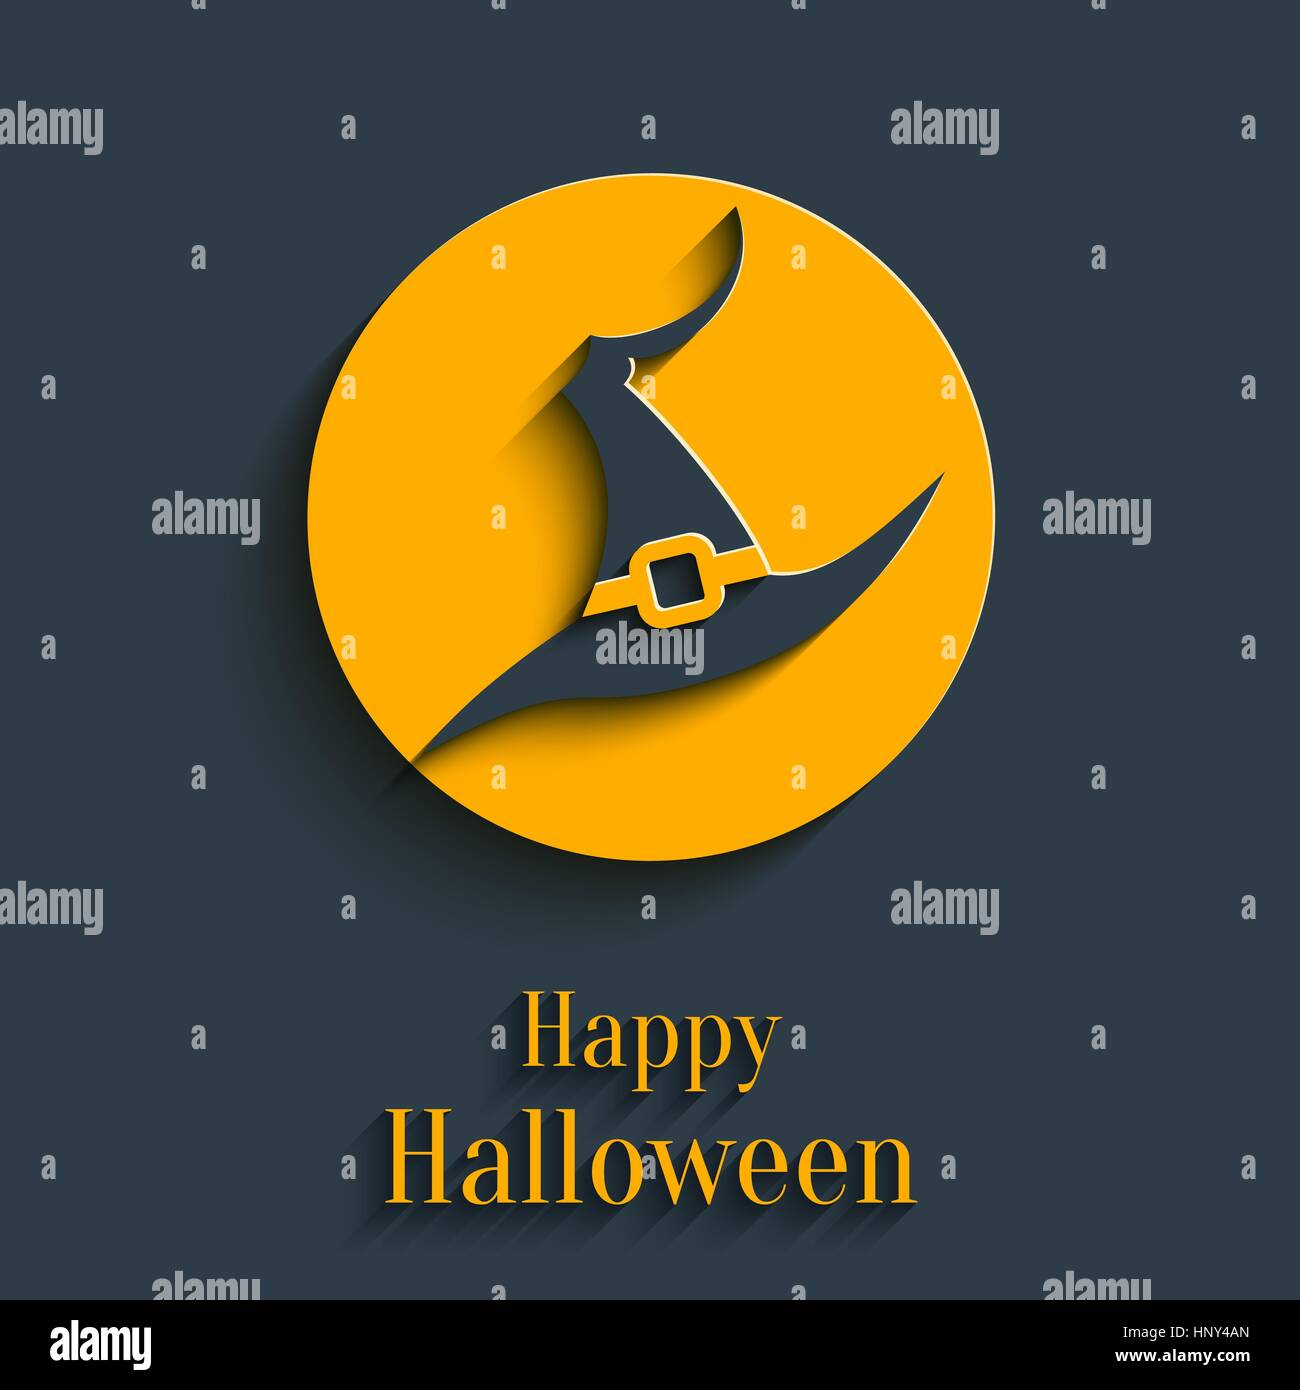 design template for greeting card banner for halloween party in